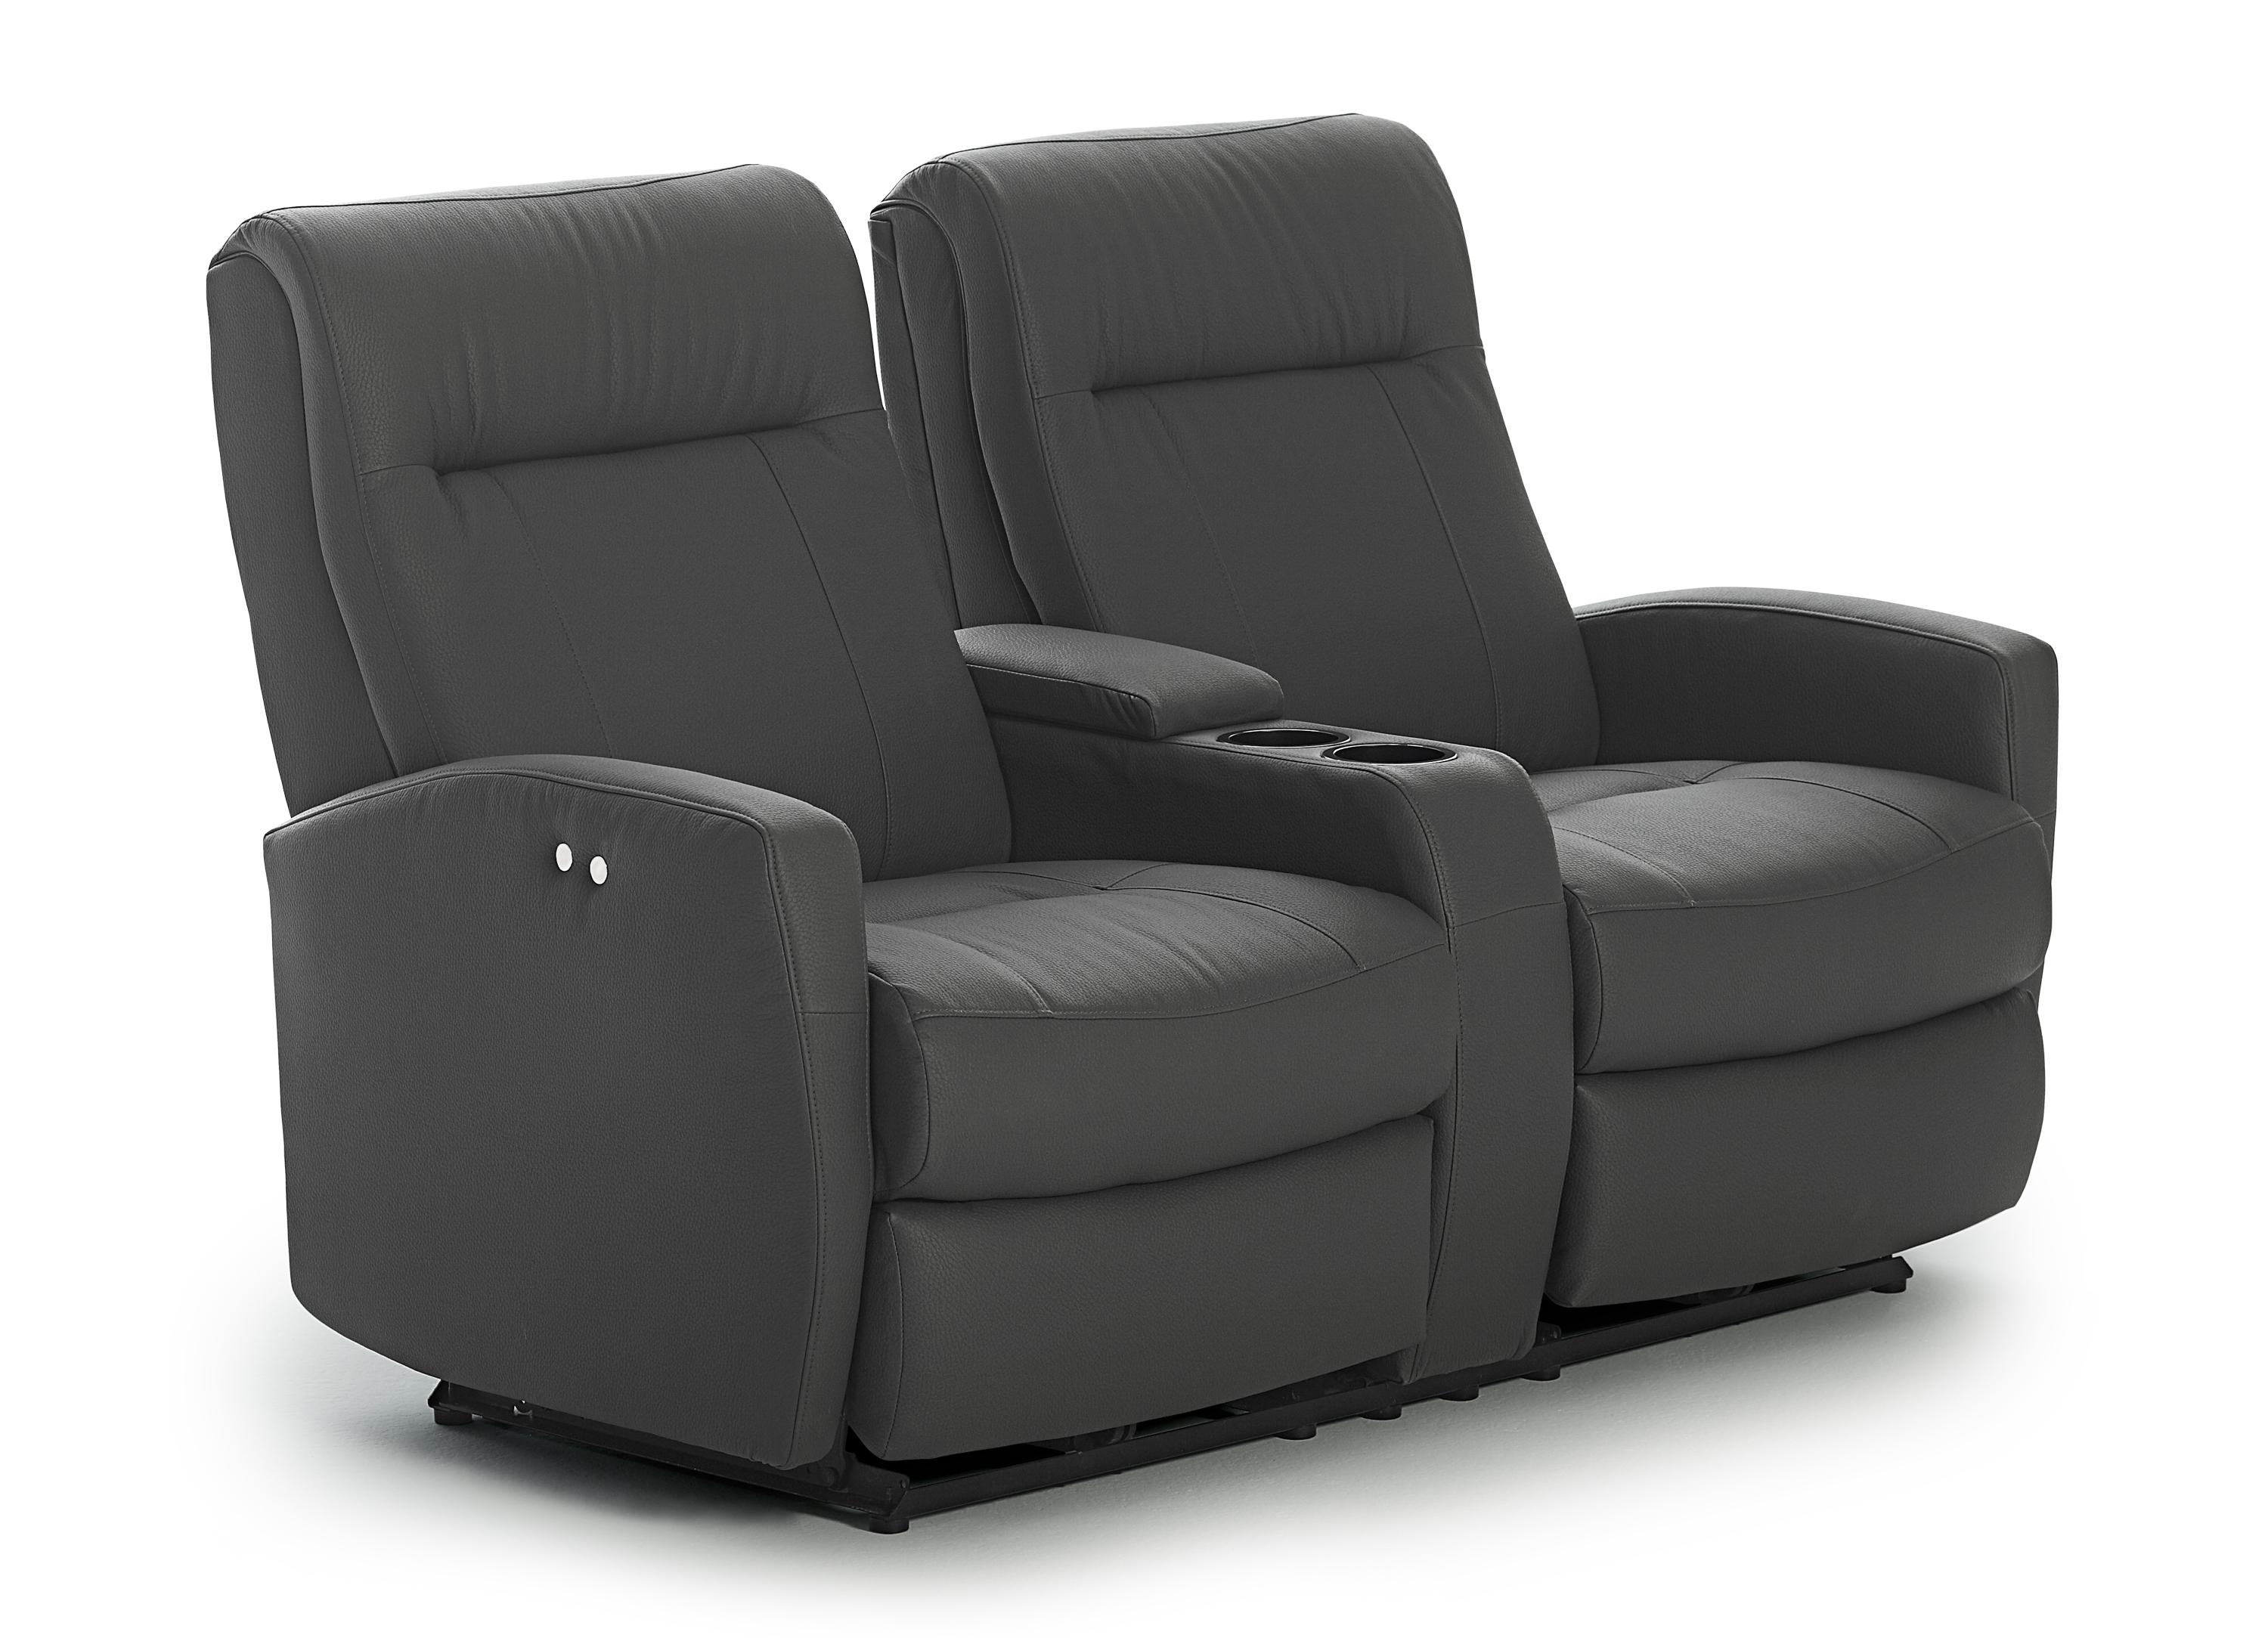 Contemporary Rocking Reclining Loveseat with Drink Console and Charging Port  sc 1 st  Wolf Furniture & Contemporary Rocking Reclining Loveseat with Drink Console and ... islam-shia.org